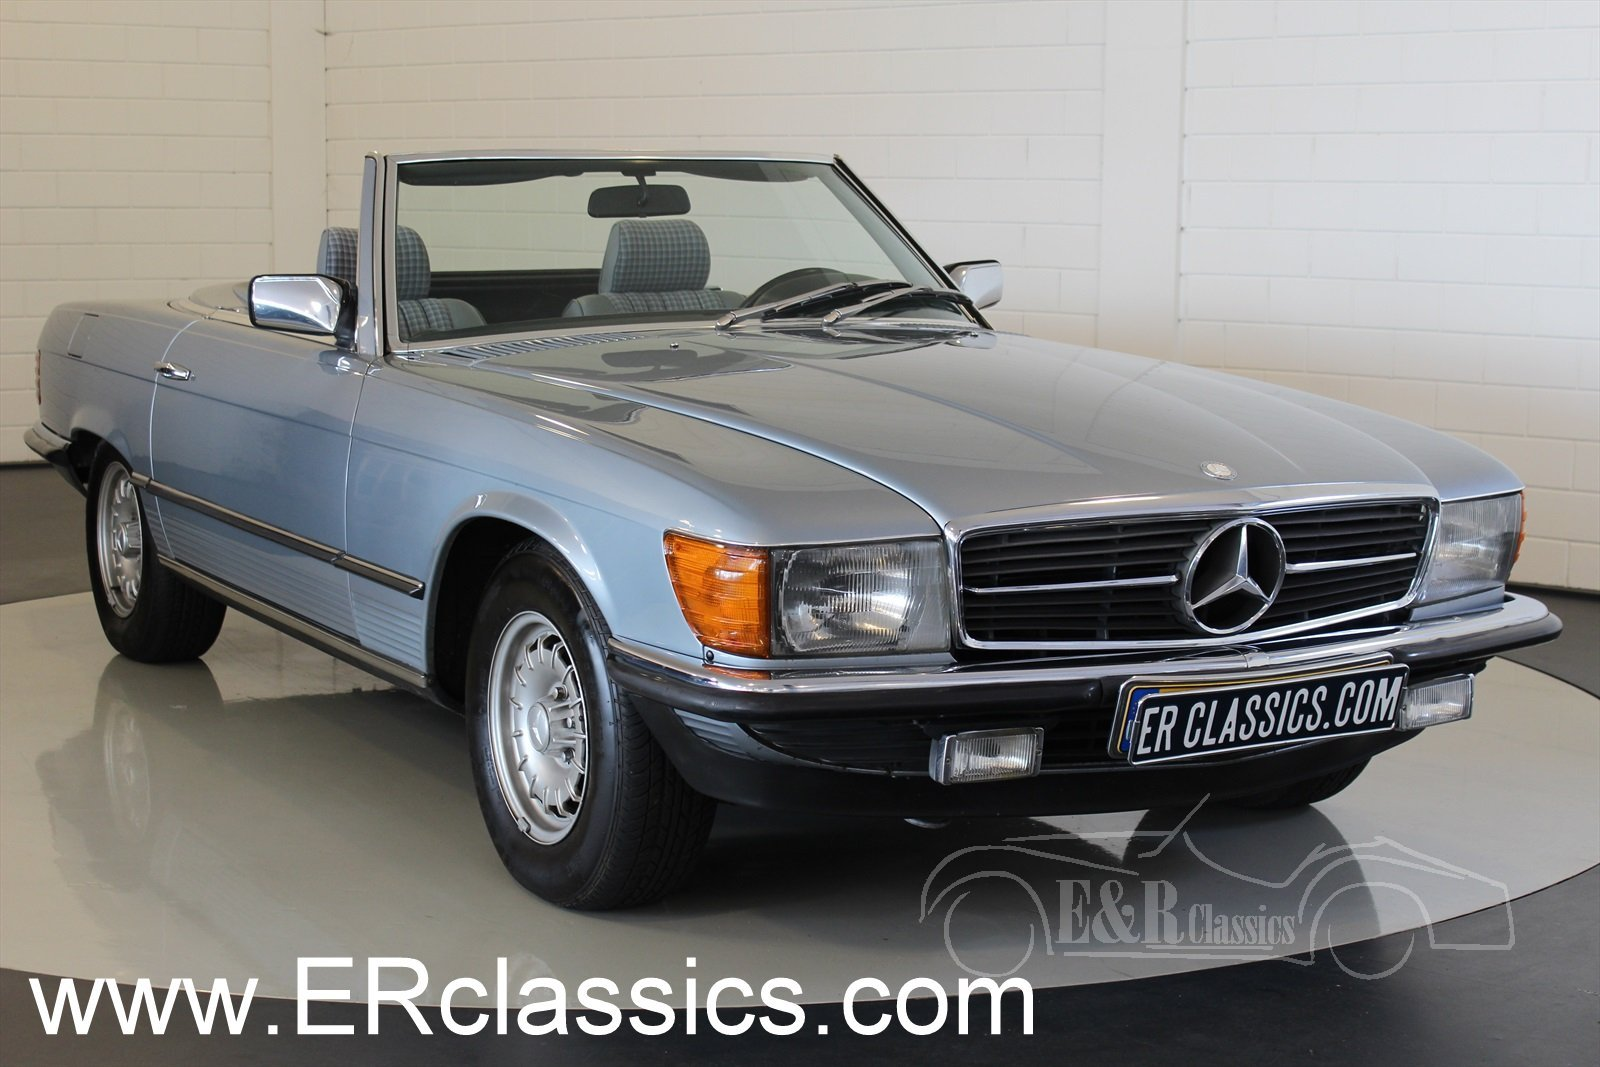 Mercedes-Benz SL 280 1983 European version For Sale (picture 1 of 6)